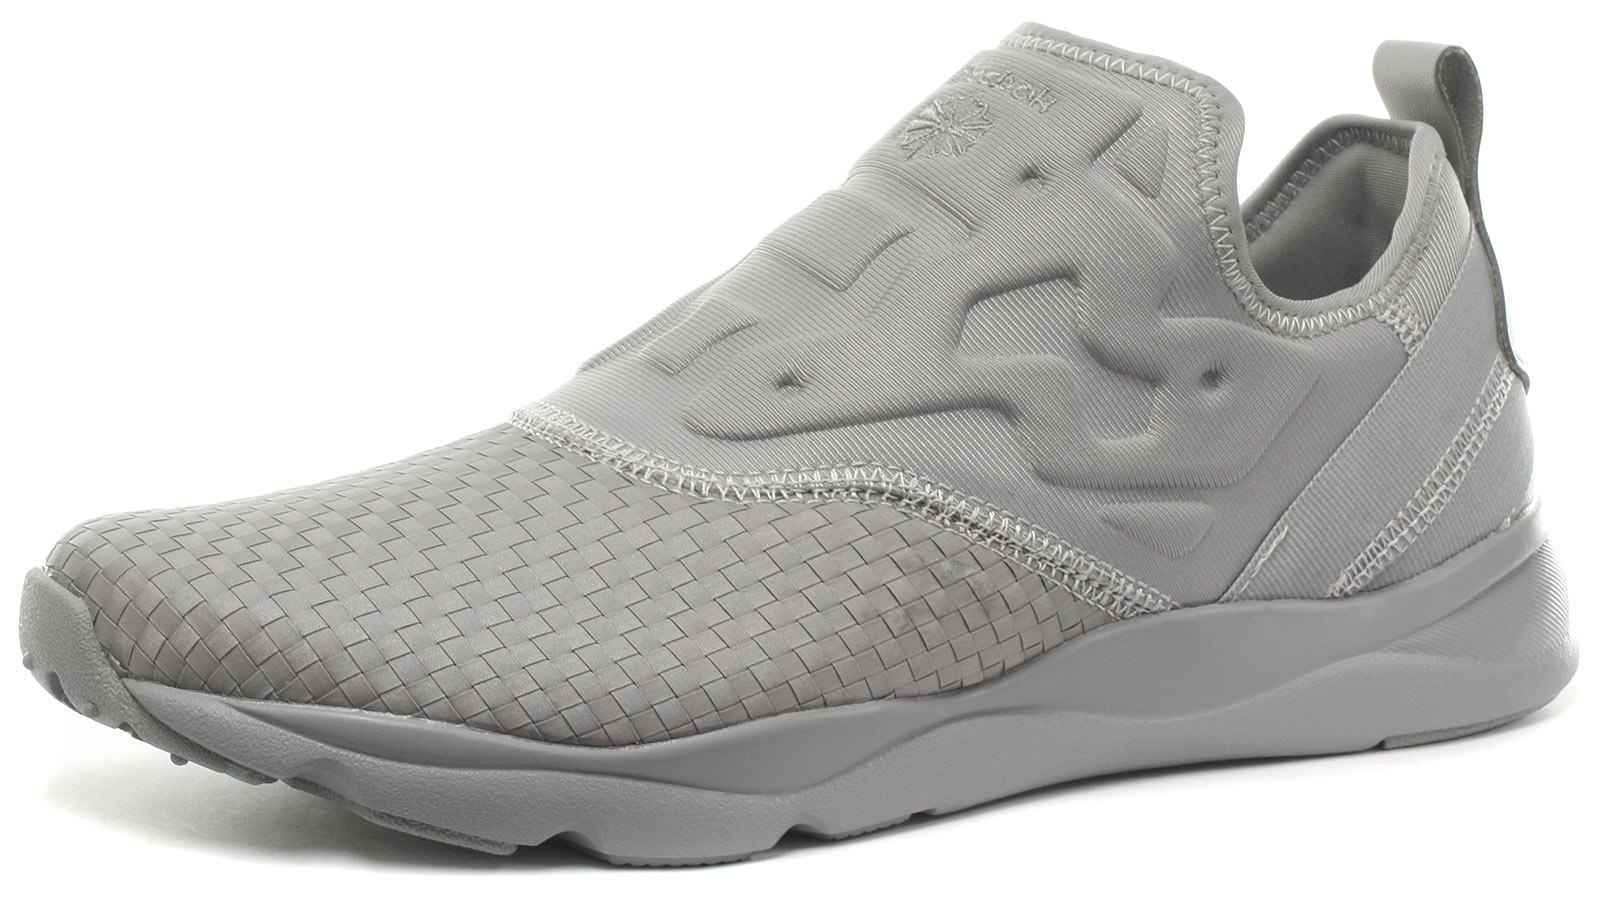 Reebok Classic Furylite Slip-On WW Mens Trainers ALL SIZES AND COLOURS   Picture 2 of 9  Picture 3 of 9  Picture 4 of 9 47df4a196